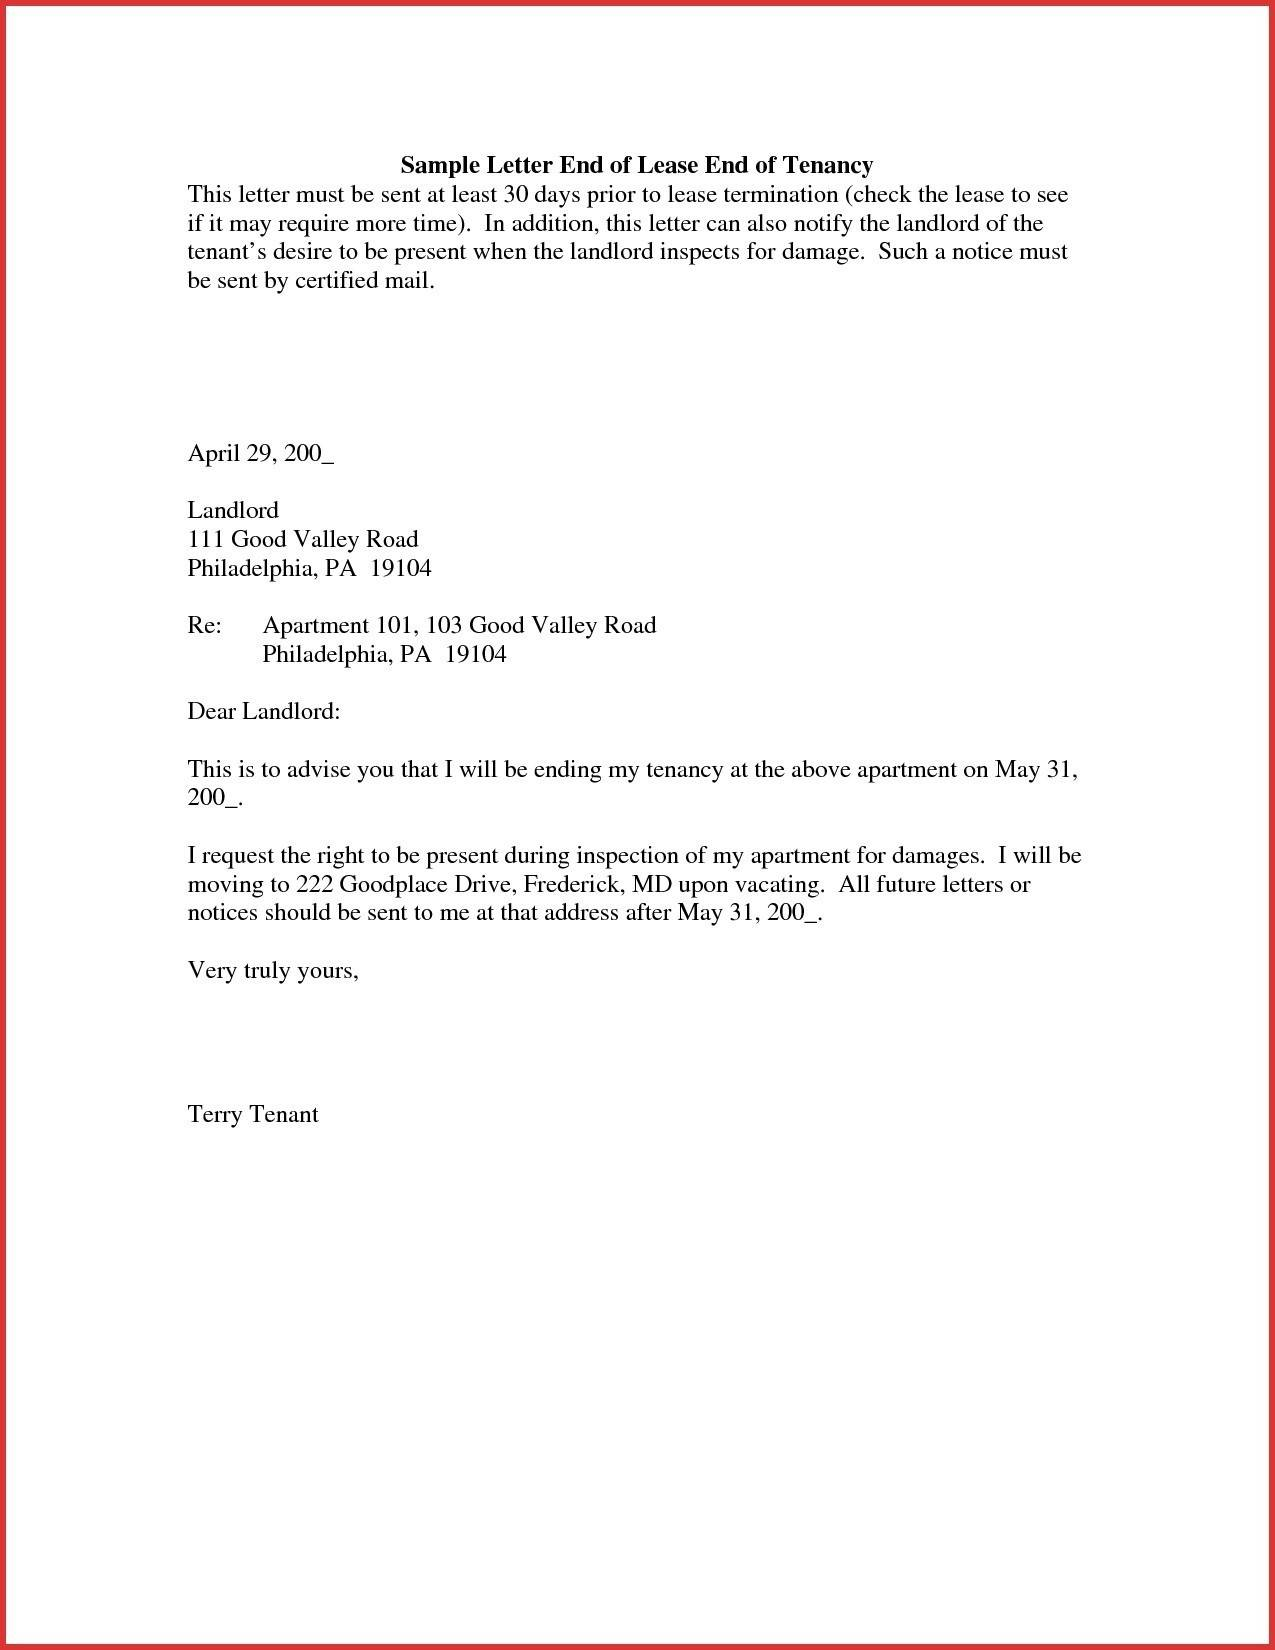 Sample Letter Giving Notice To End Tenancy